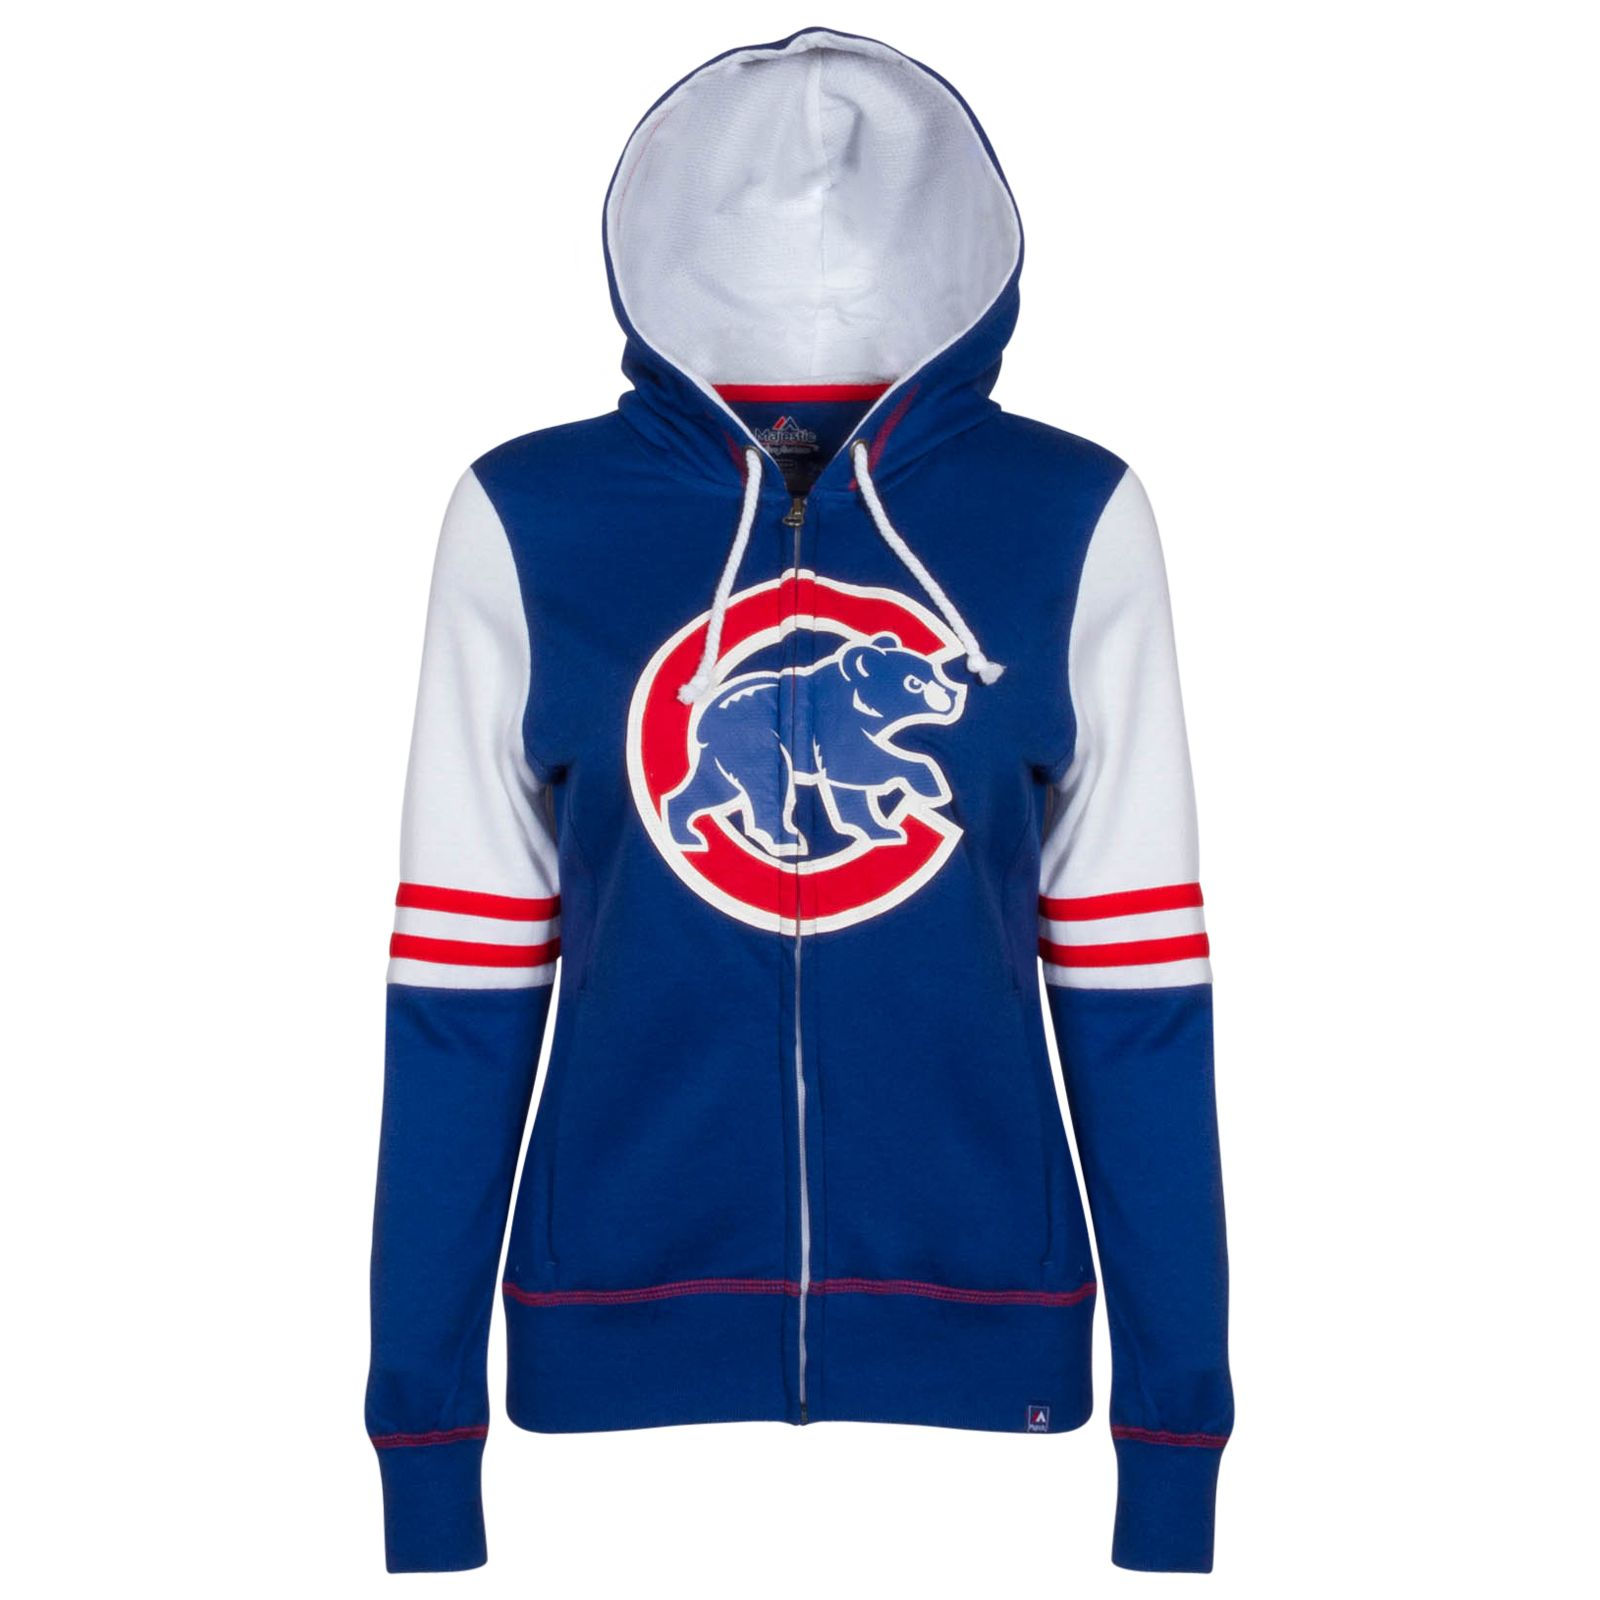 hot sale online 241d1 146c1 Chicago Cubs Women's Royal, White, and Red Crawl Bear ...